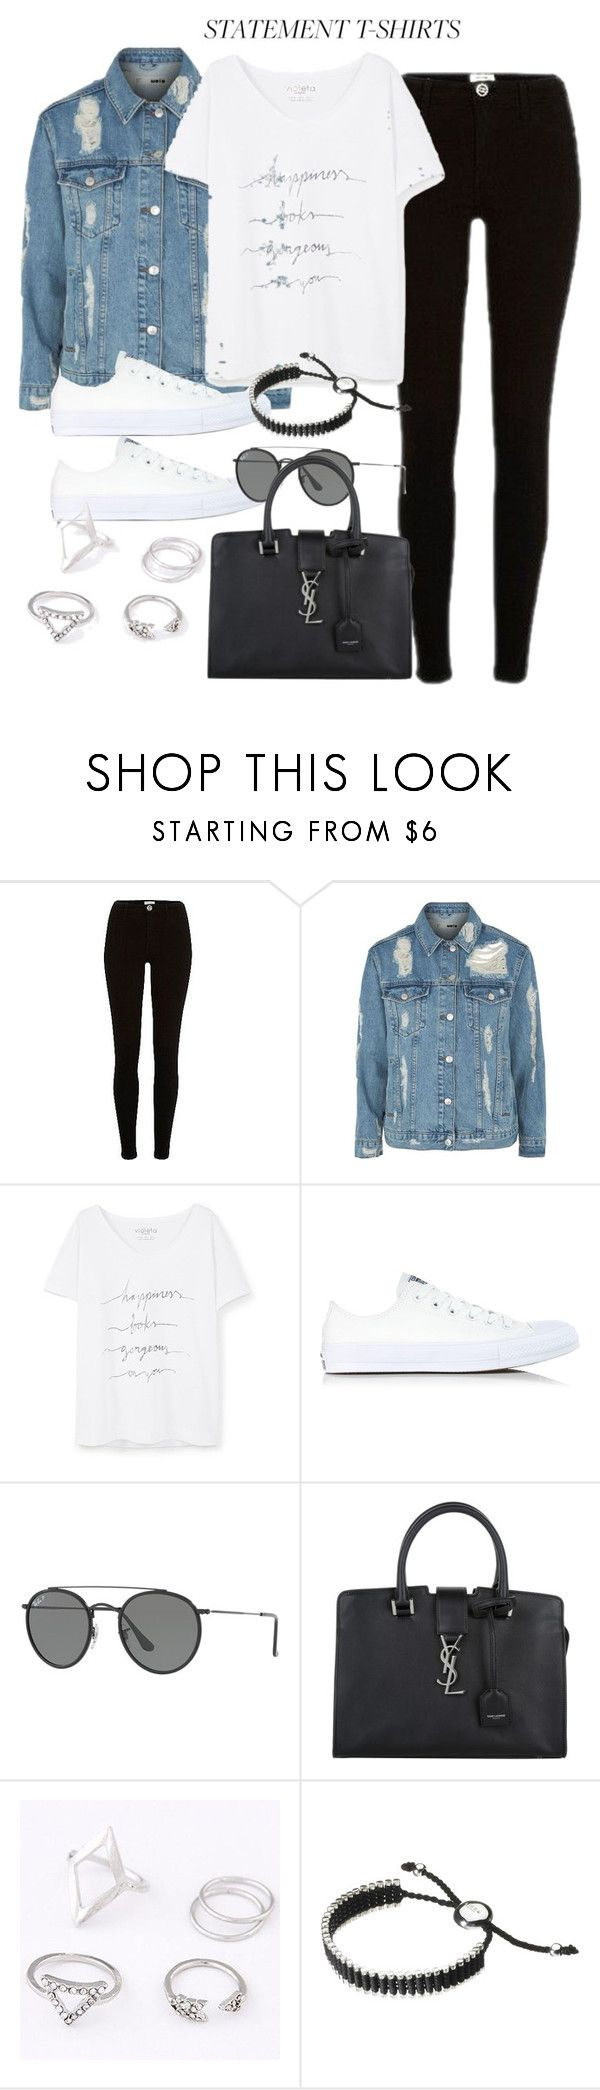 """Untitled #12209"" by vany-alvarado ❤ liked on Polyvore featuring River Island, Topshop, Violeta by Mango, Converse, Ray-Ban, Yves Saint Laurent and Links of London"